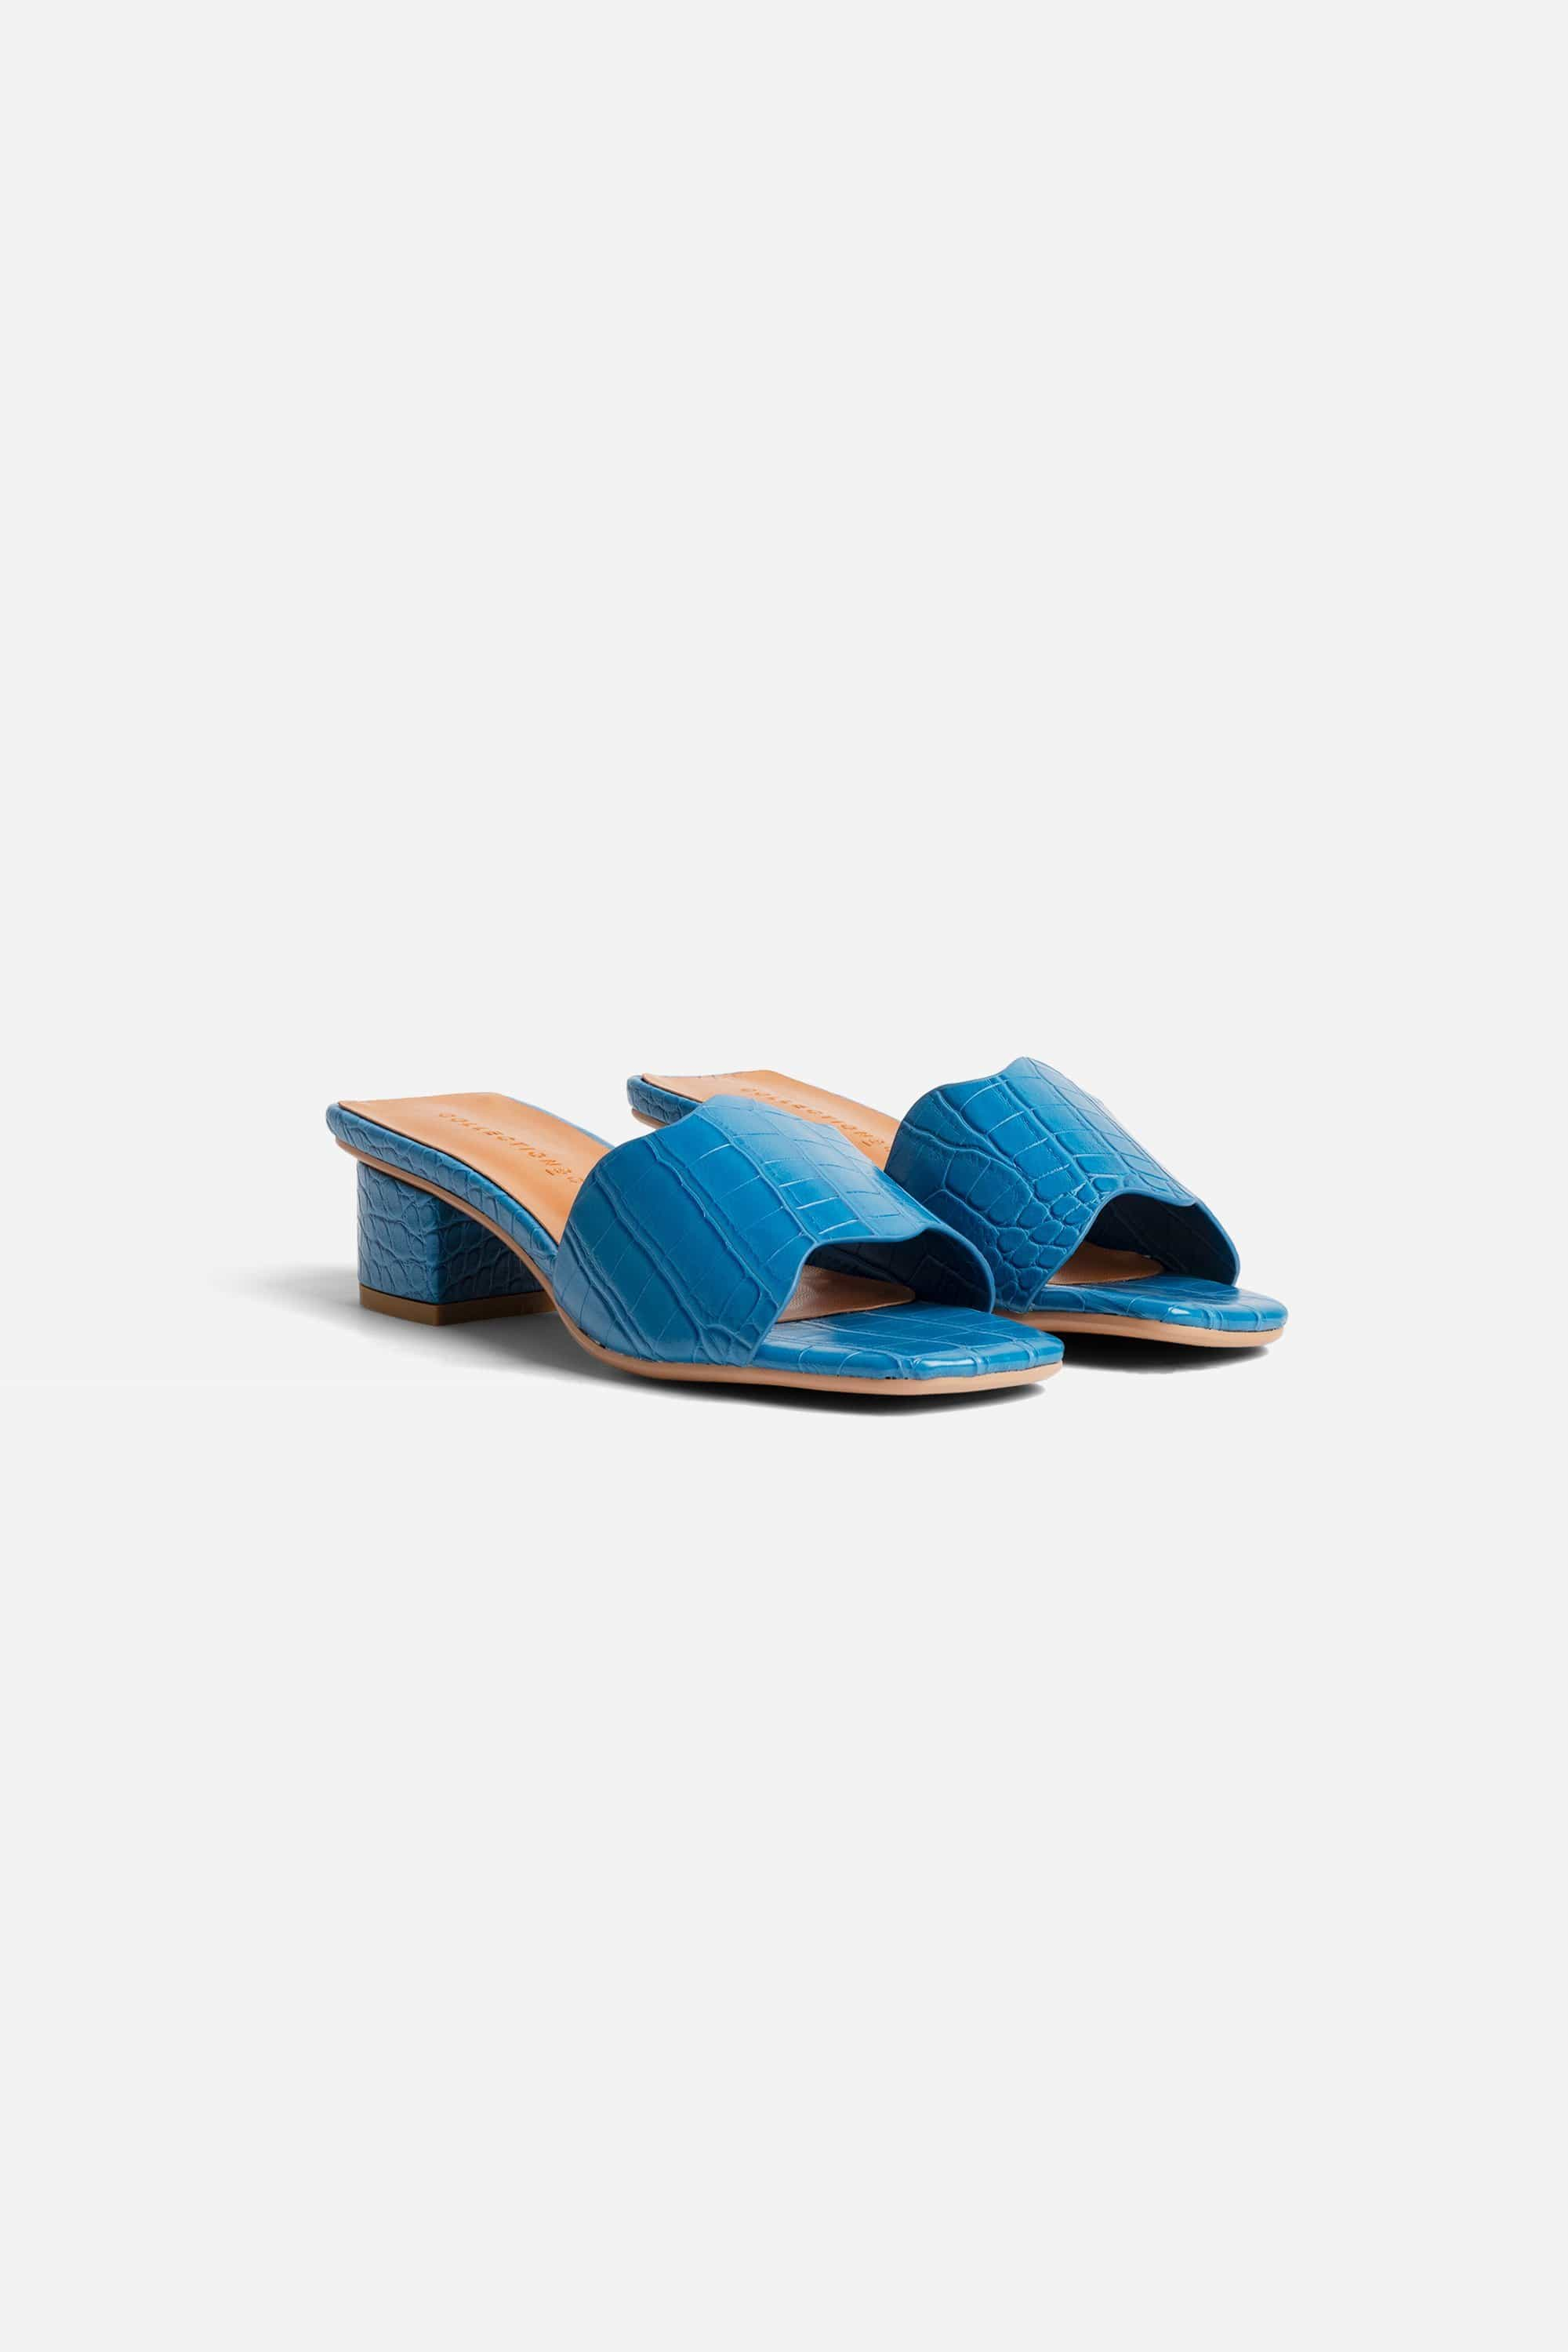 Collection & Co Kitty Up-Cycled Vegan Leather Mule | Blue Croc